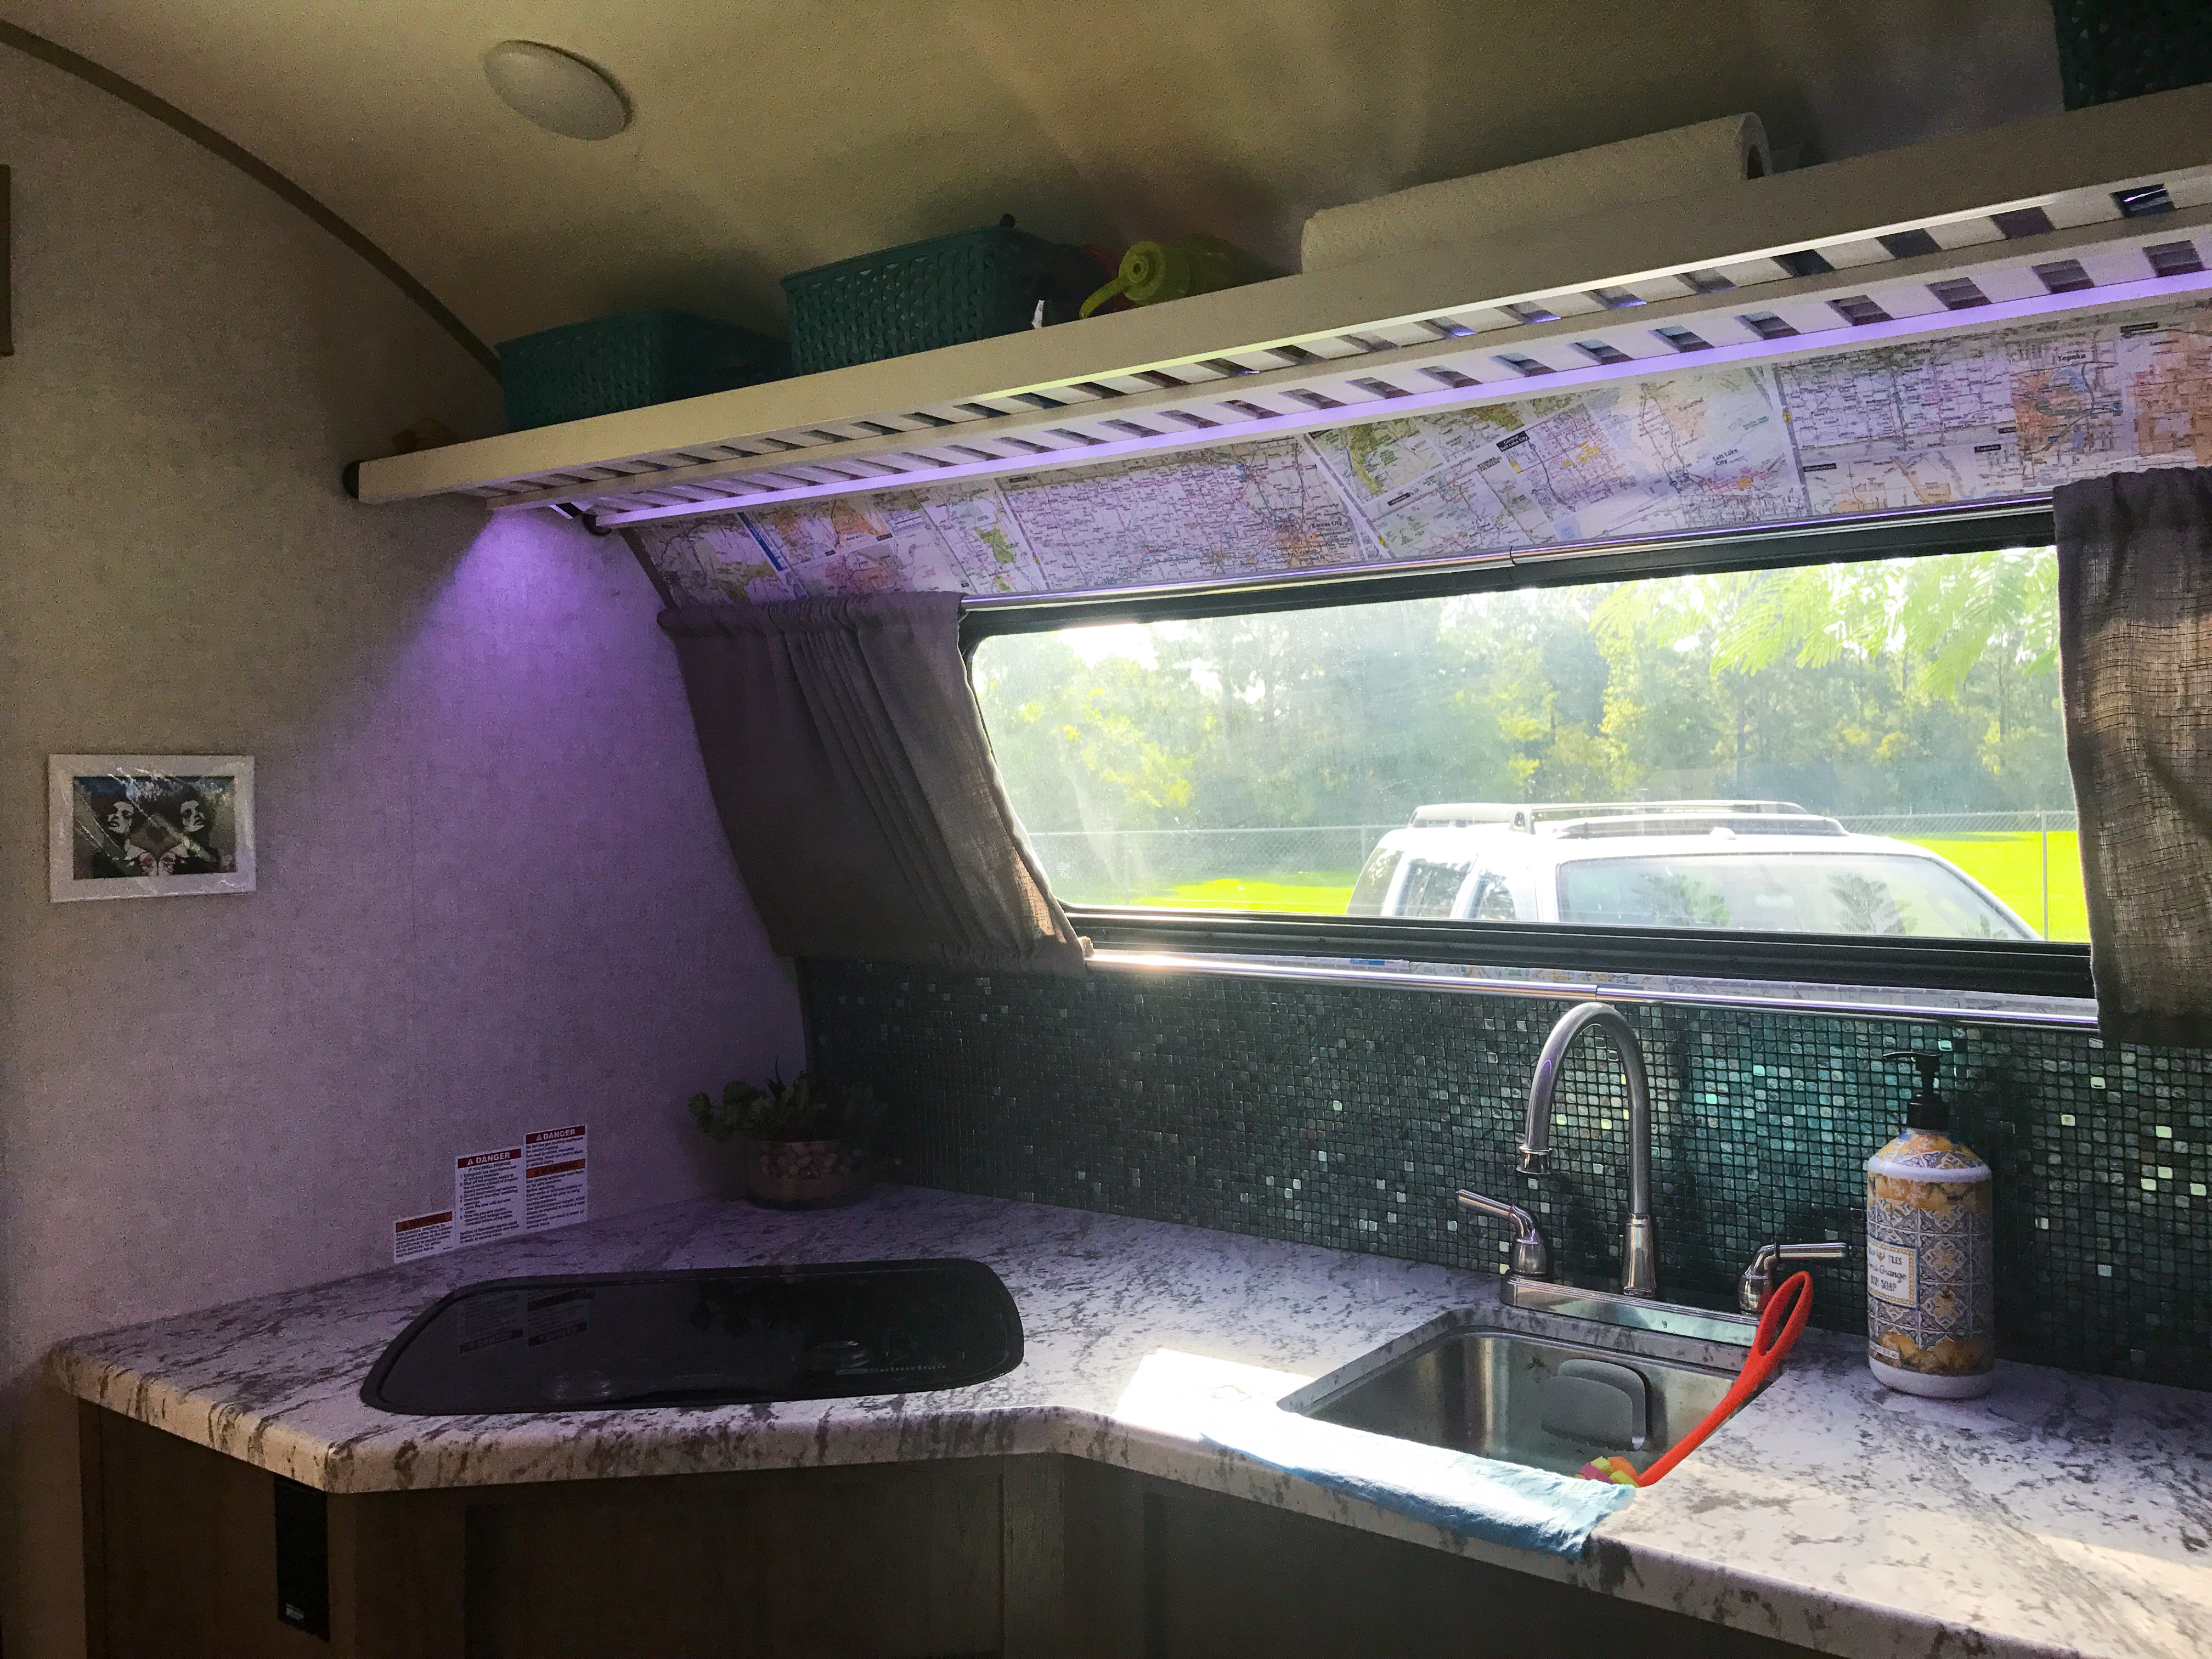 Remote controlled LED lights in the spacious kitchen. Upgraded tile kitchen backsplash and decoupage map wallpaper by yours truly! -Actual travel trailer setup!